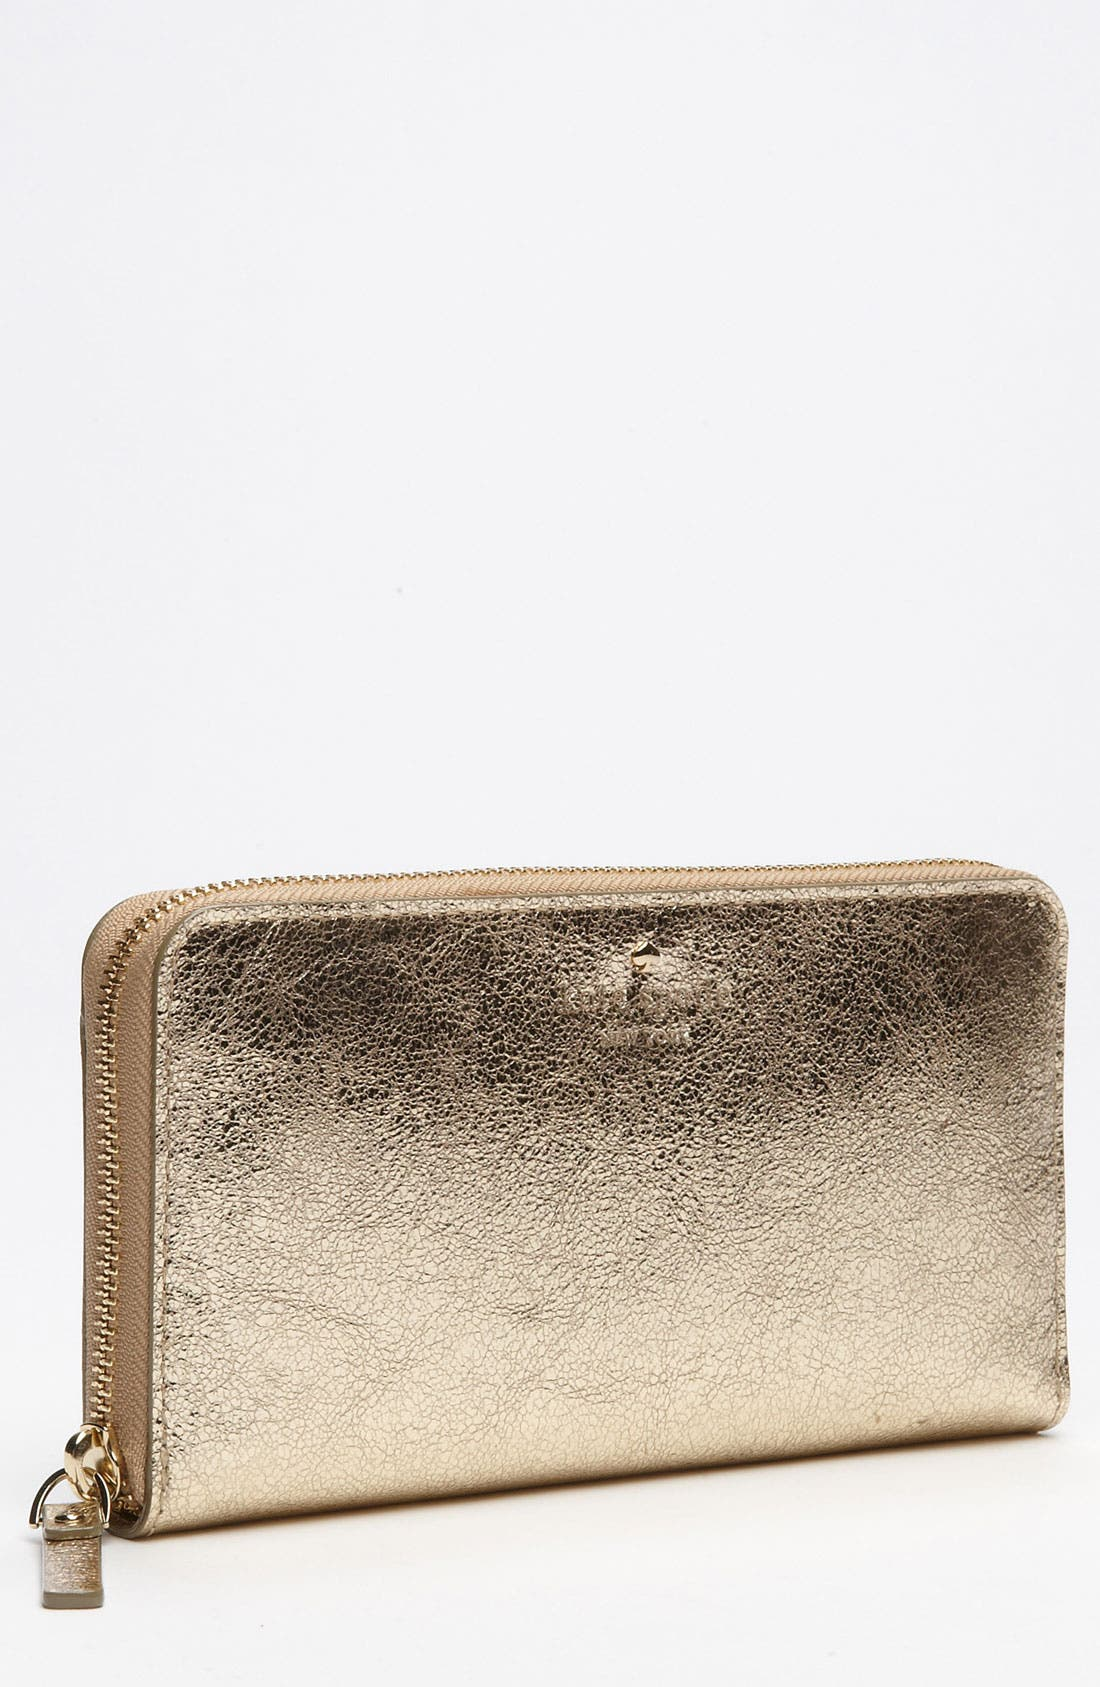 Main Image - kate spade new york 'harrison street - metallic lacey' wallet